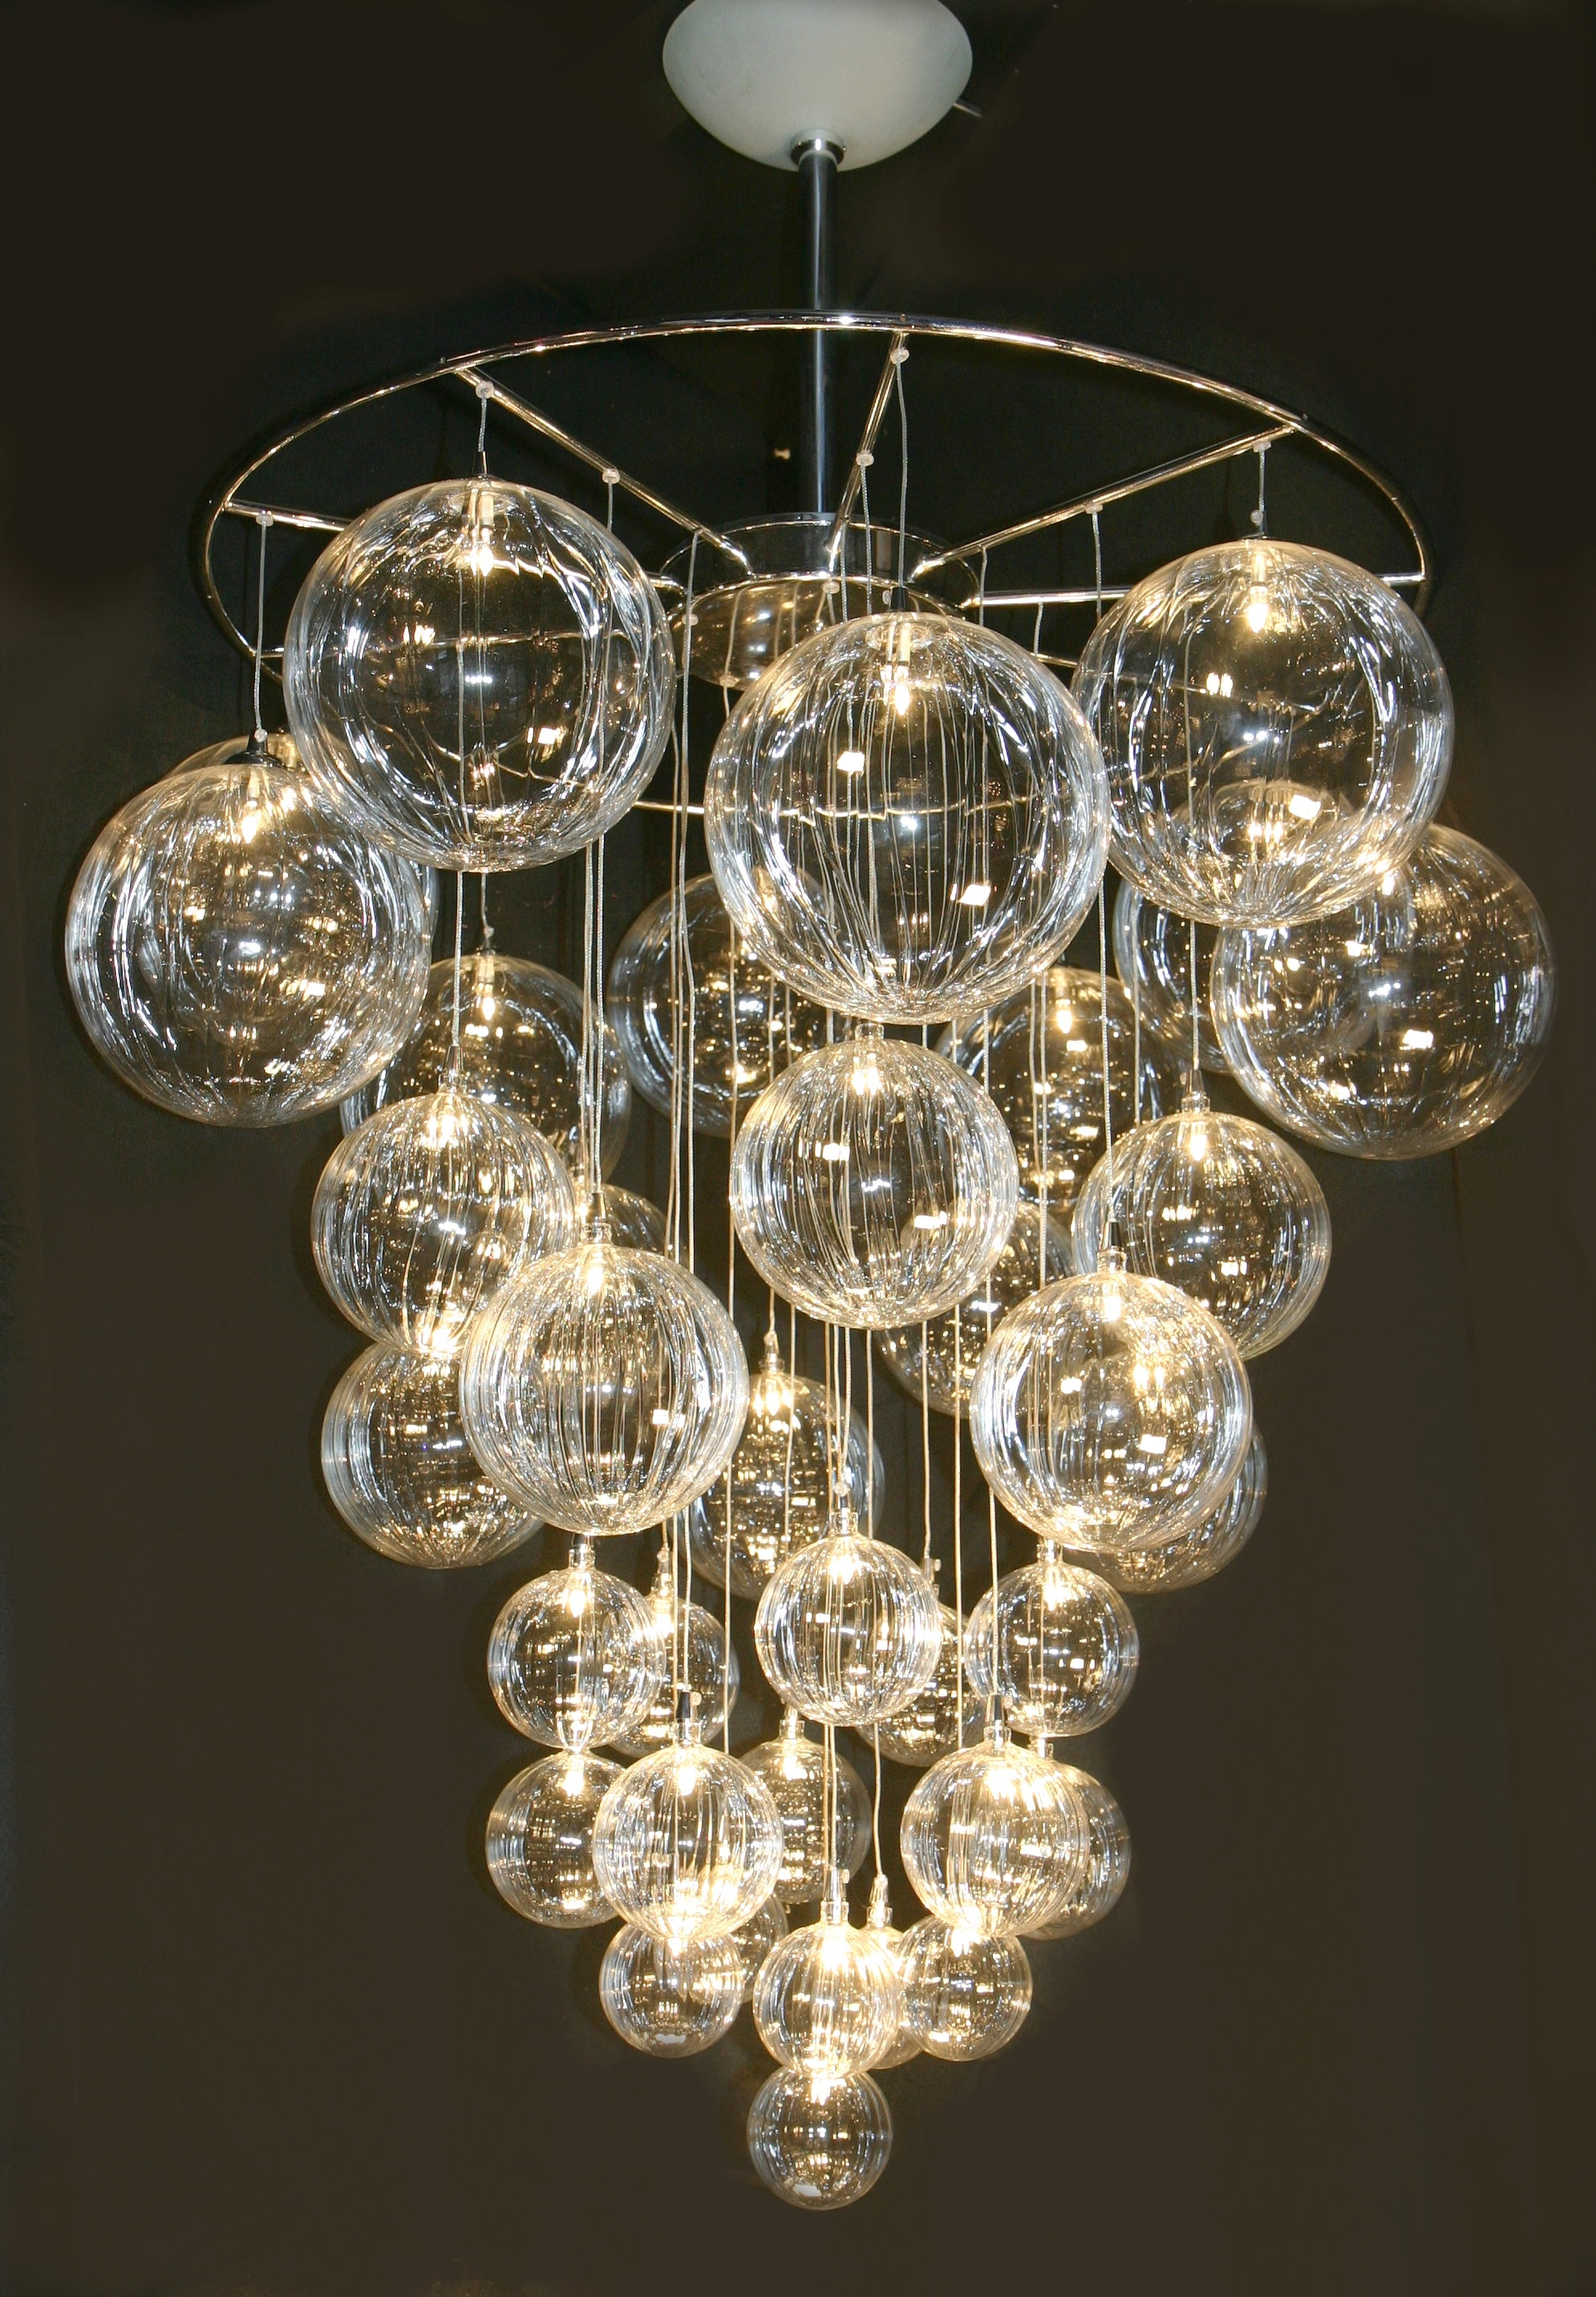 53 Modern Chandelier Lighting Chromecrystalmetal Bubble Shade With Small Glass Chandeliers (View 15 of 15)